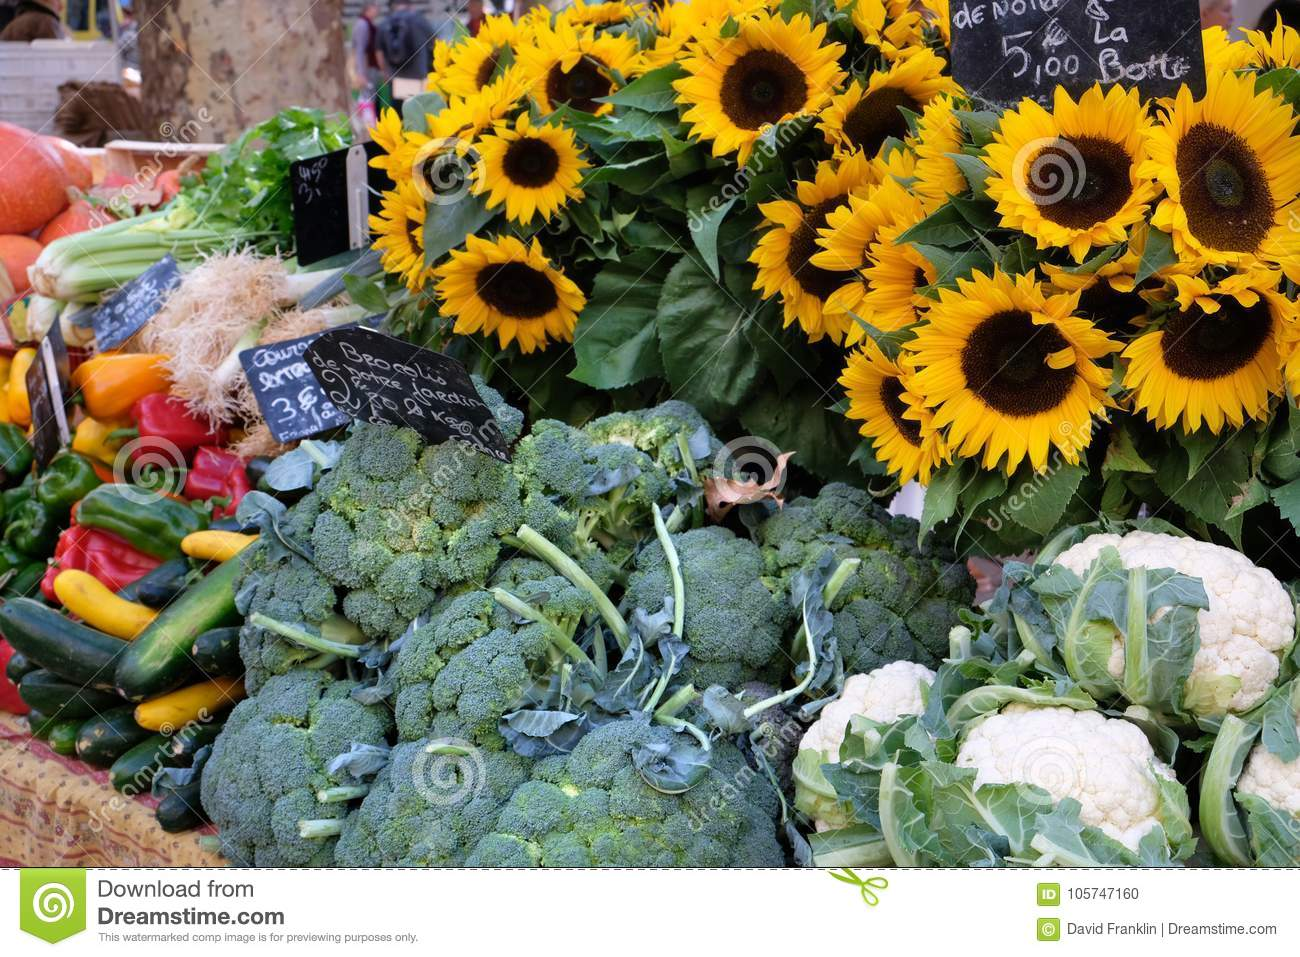 Farmers market in France with vegetables and sunflowers.